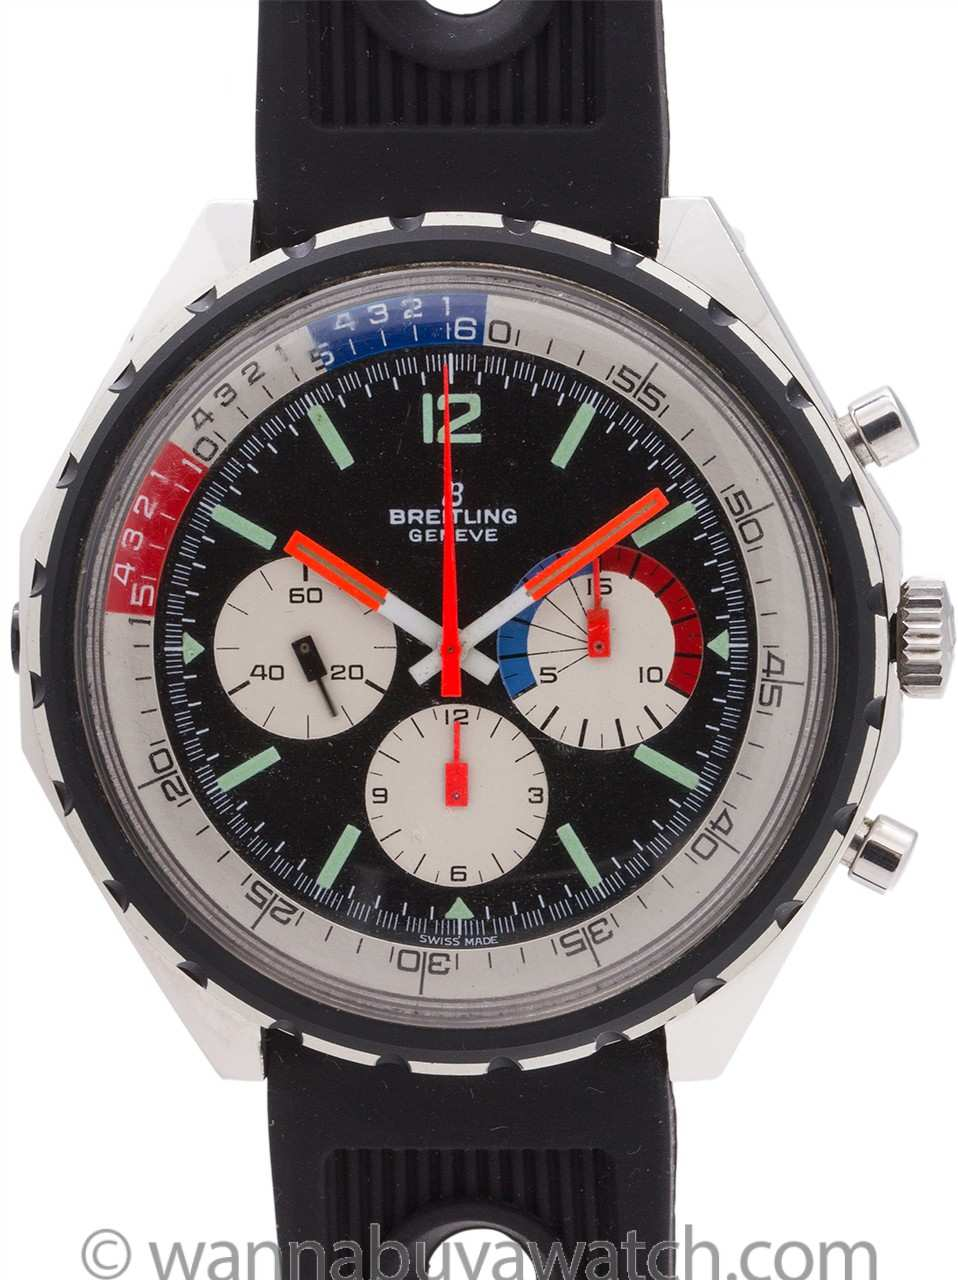 Breitling Co-Pilot Yachting Chronograph ref 7652 Mint! circa 1970's